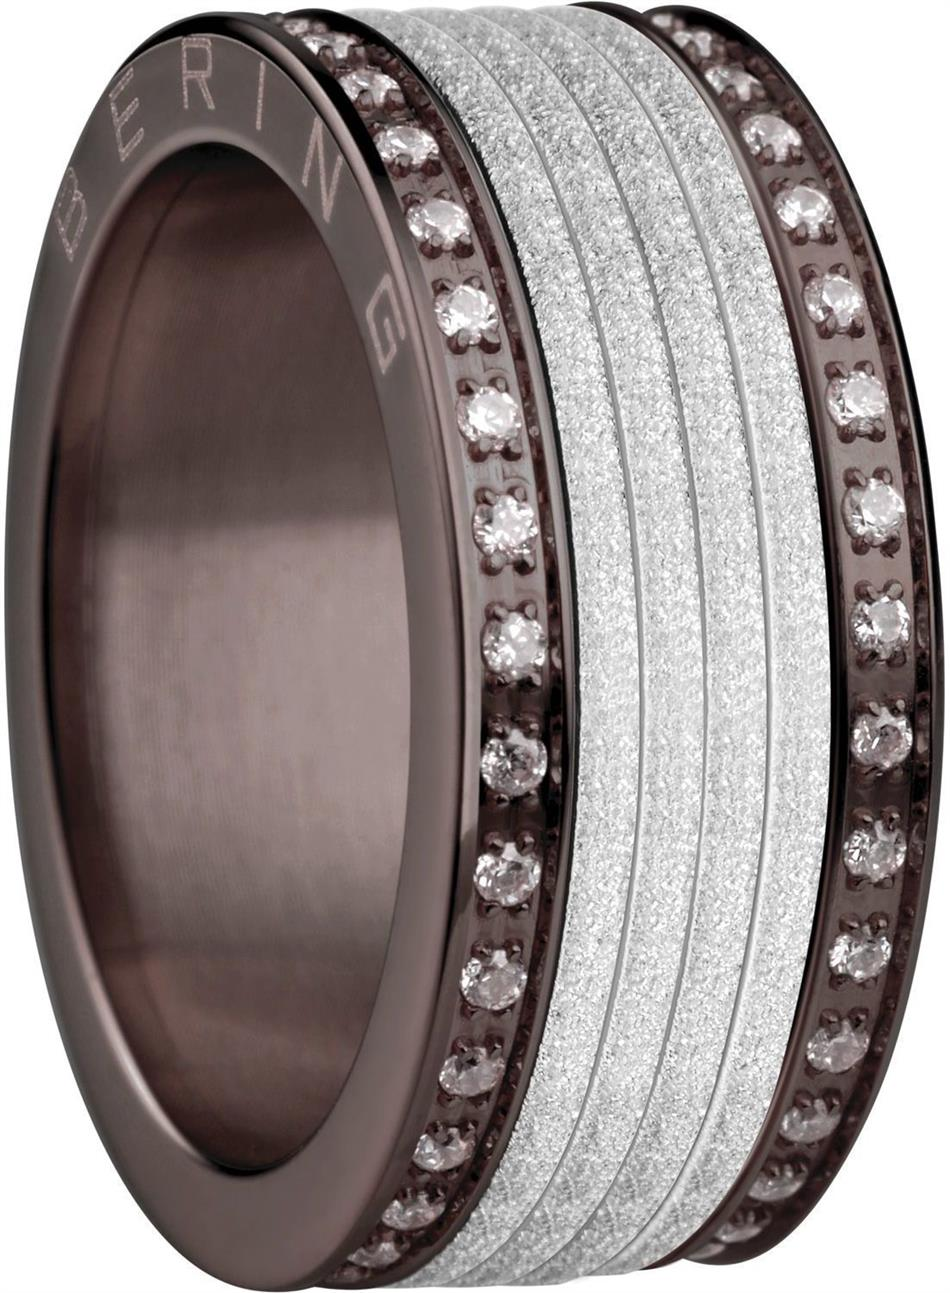 Stainless Steel Bering Rings Interactive jewelry design